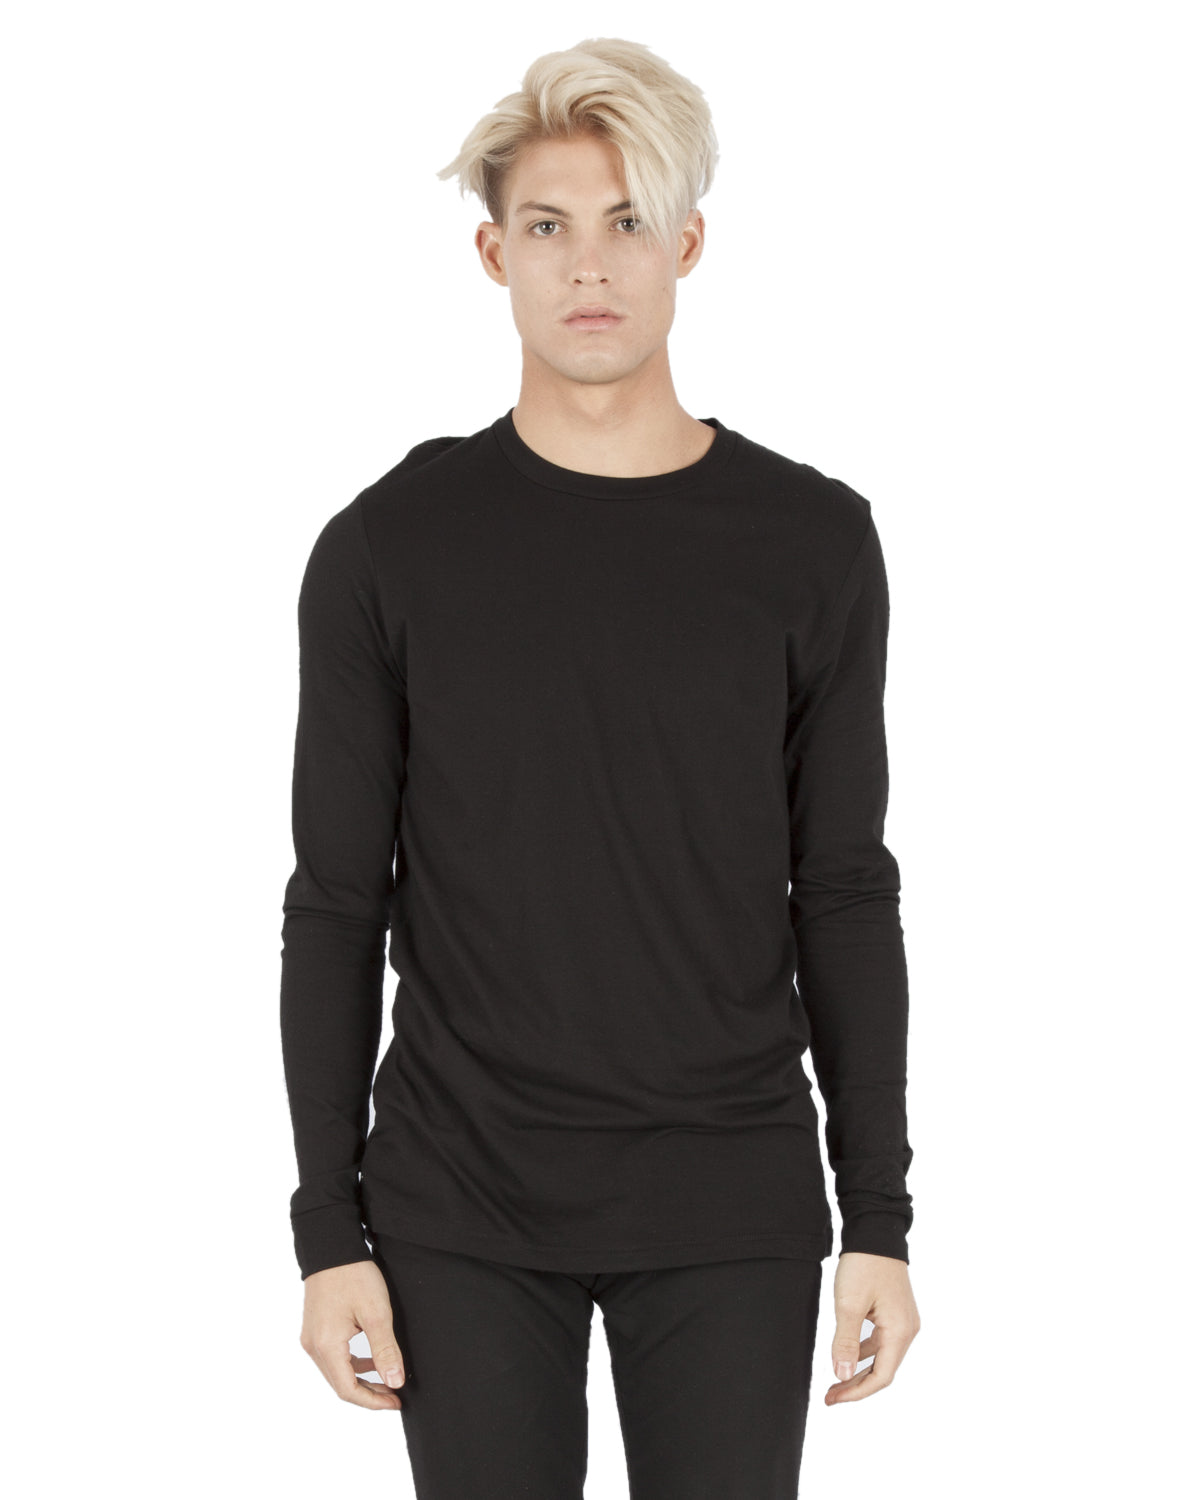 4310L Modal Crew Long Sleeve